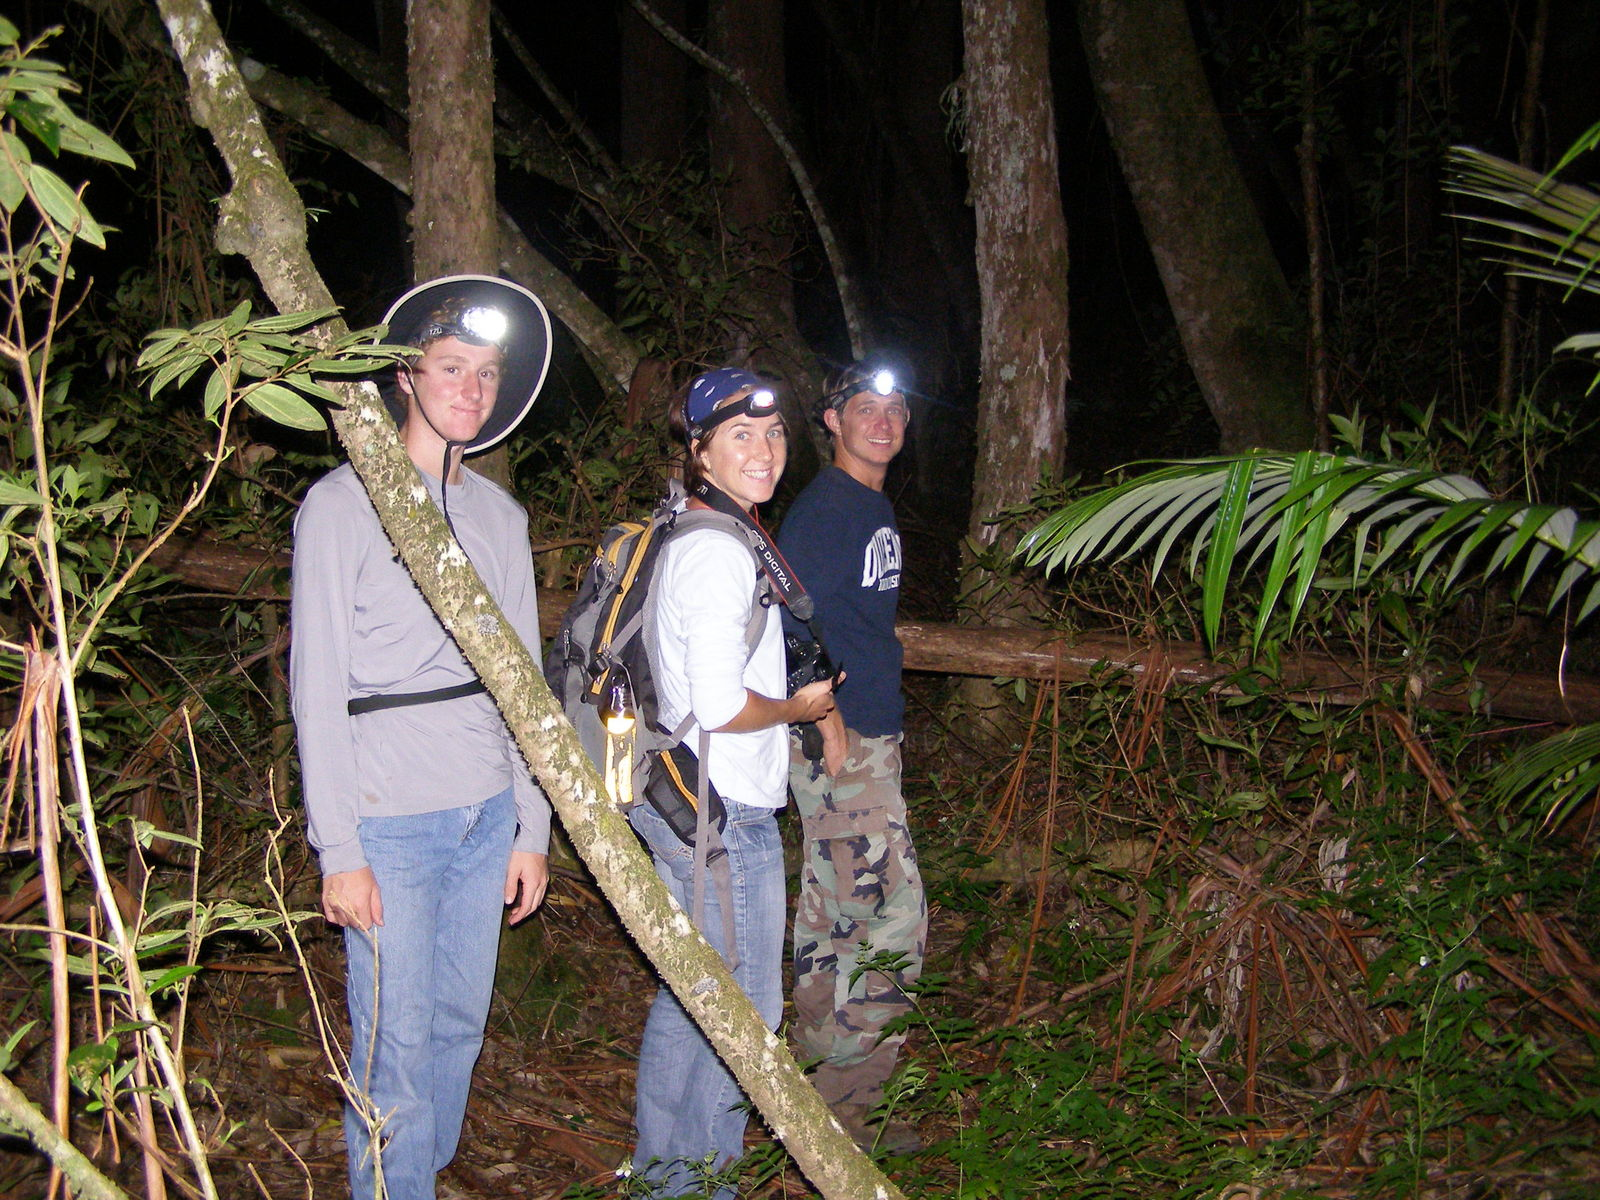 Three students in forest at night doing coqui research.